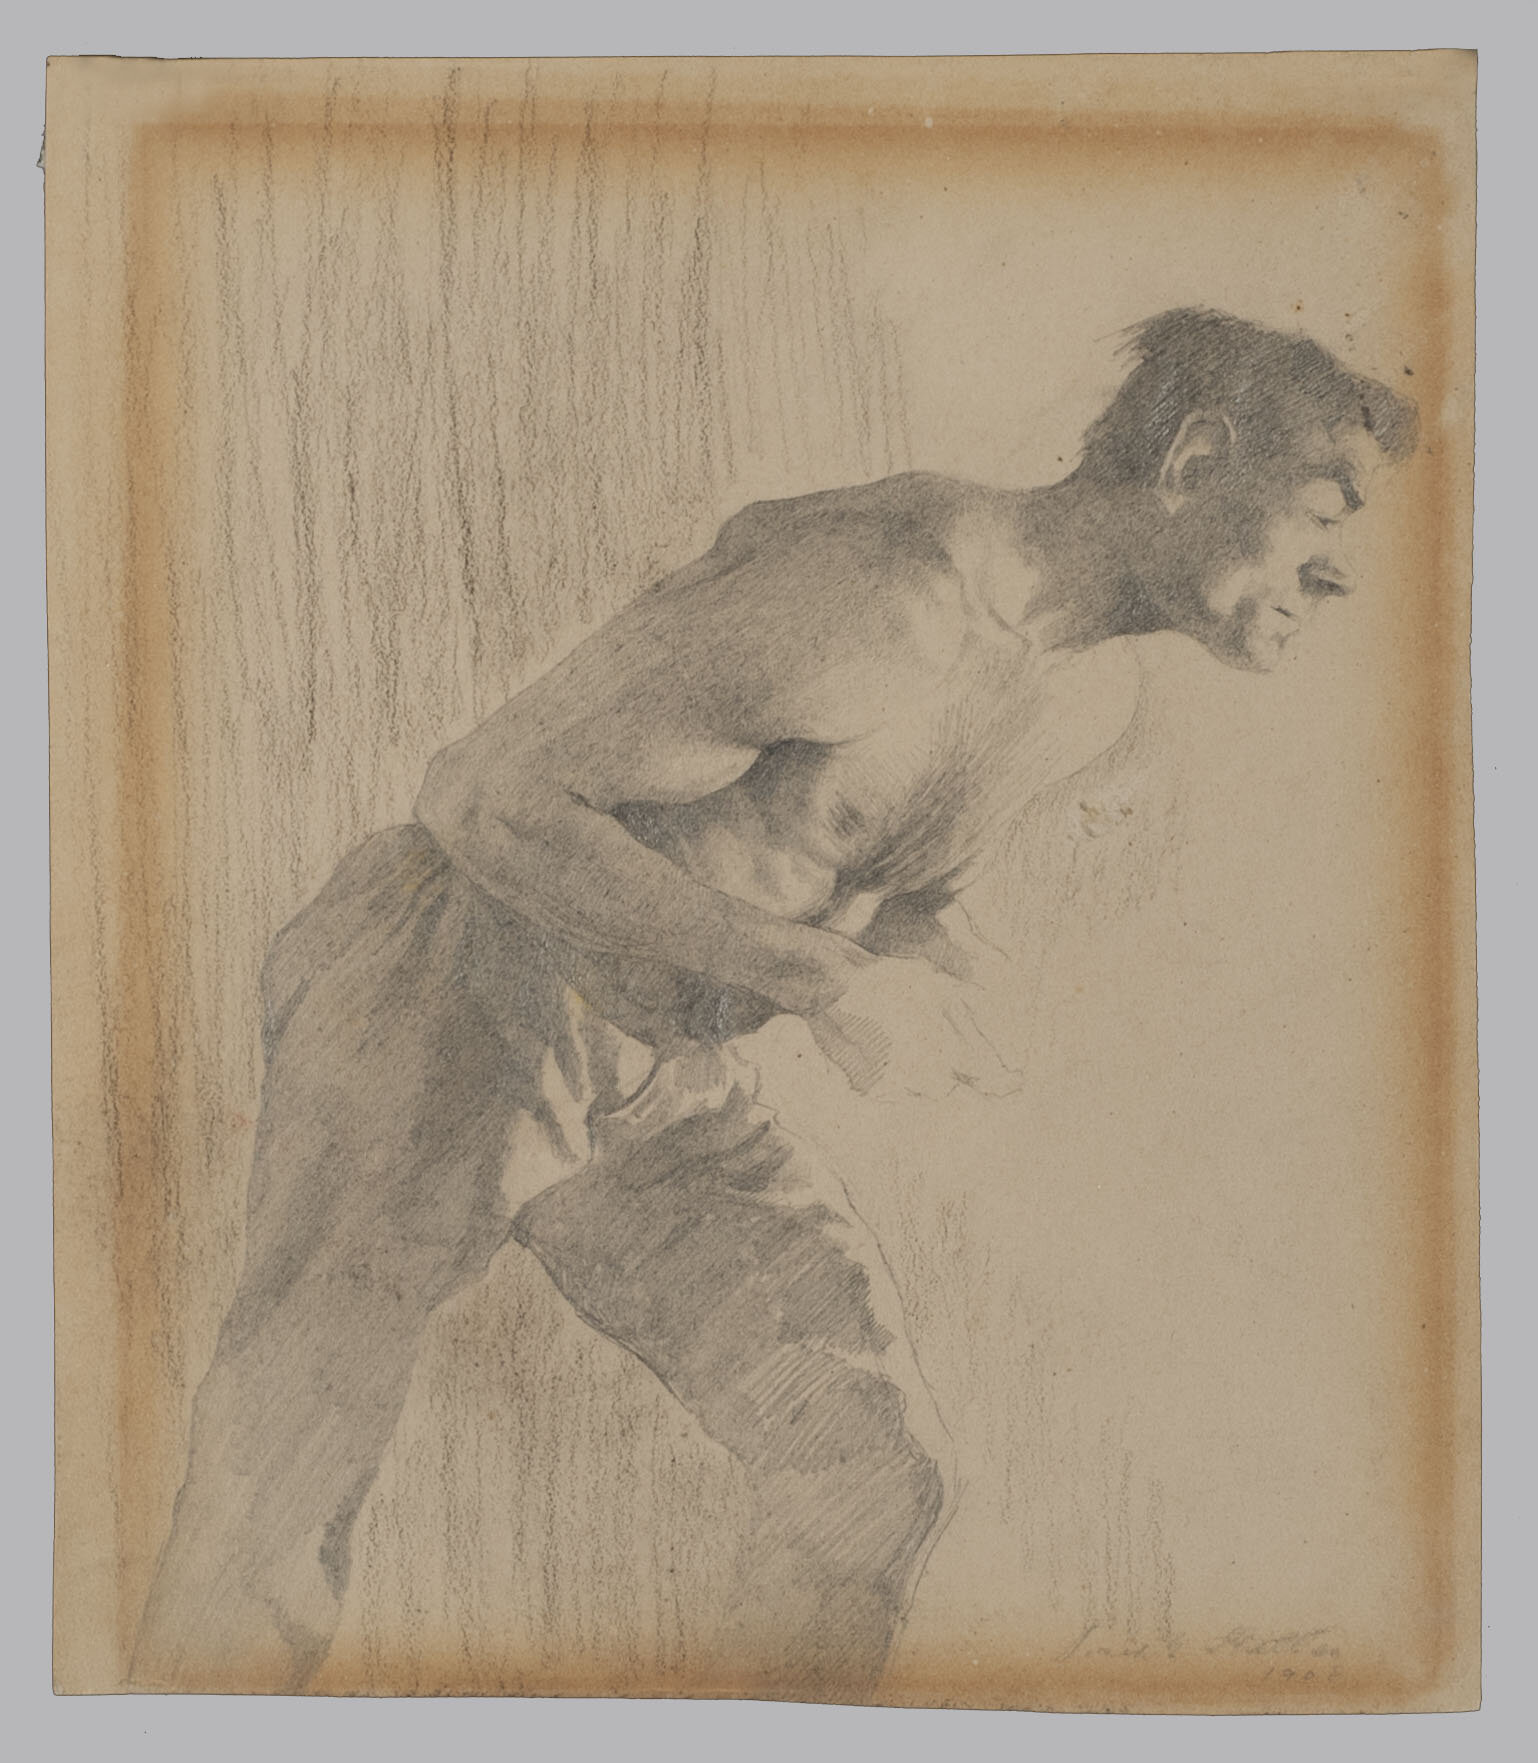 Graphite drawing with severe discoloration over the image